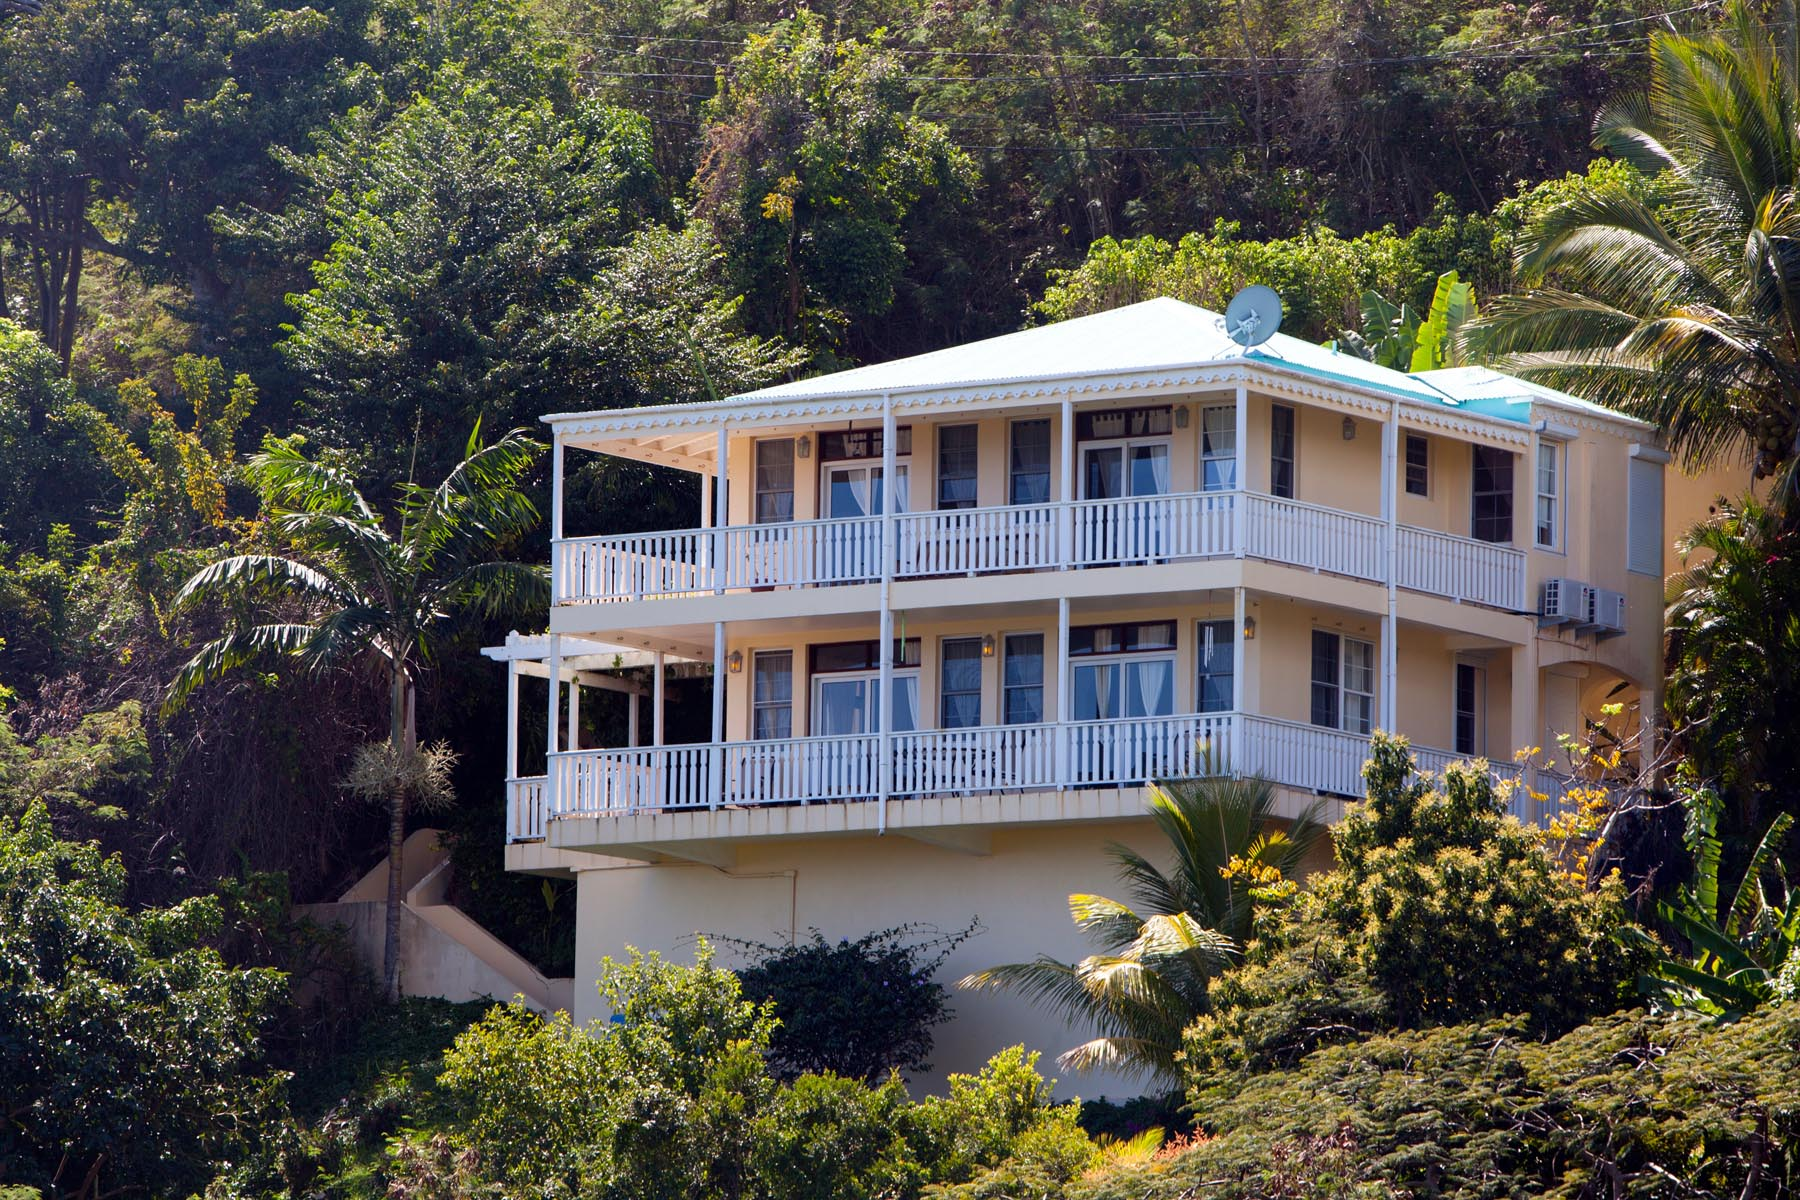 Single Family Home for Sale at Oleander House Oleander Estate, Tortola British Virgin Islands